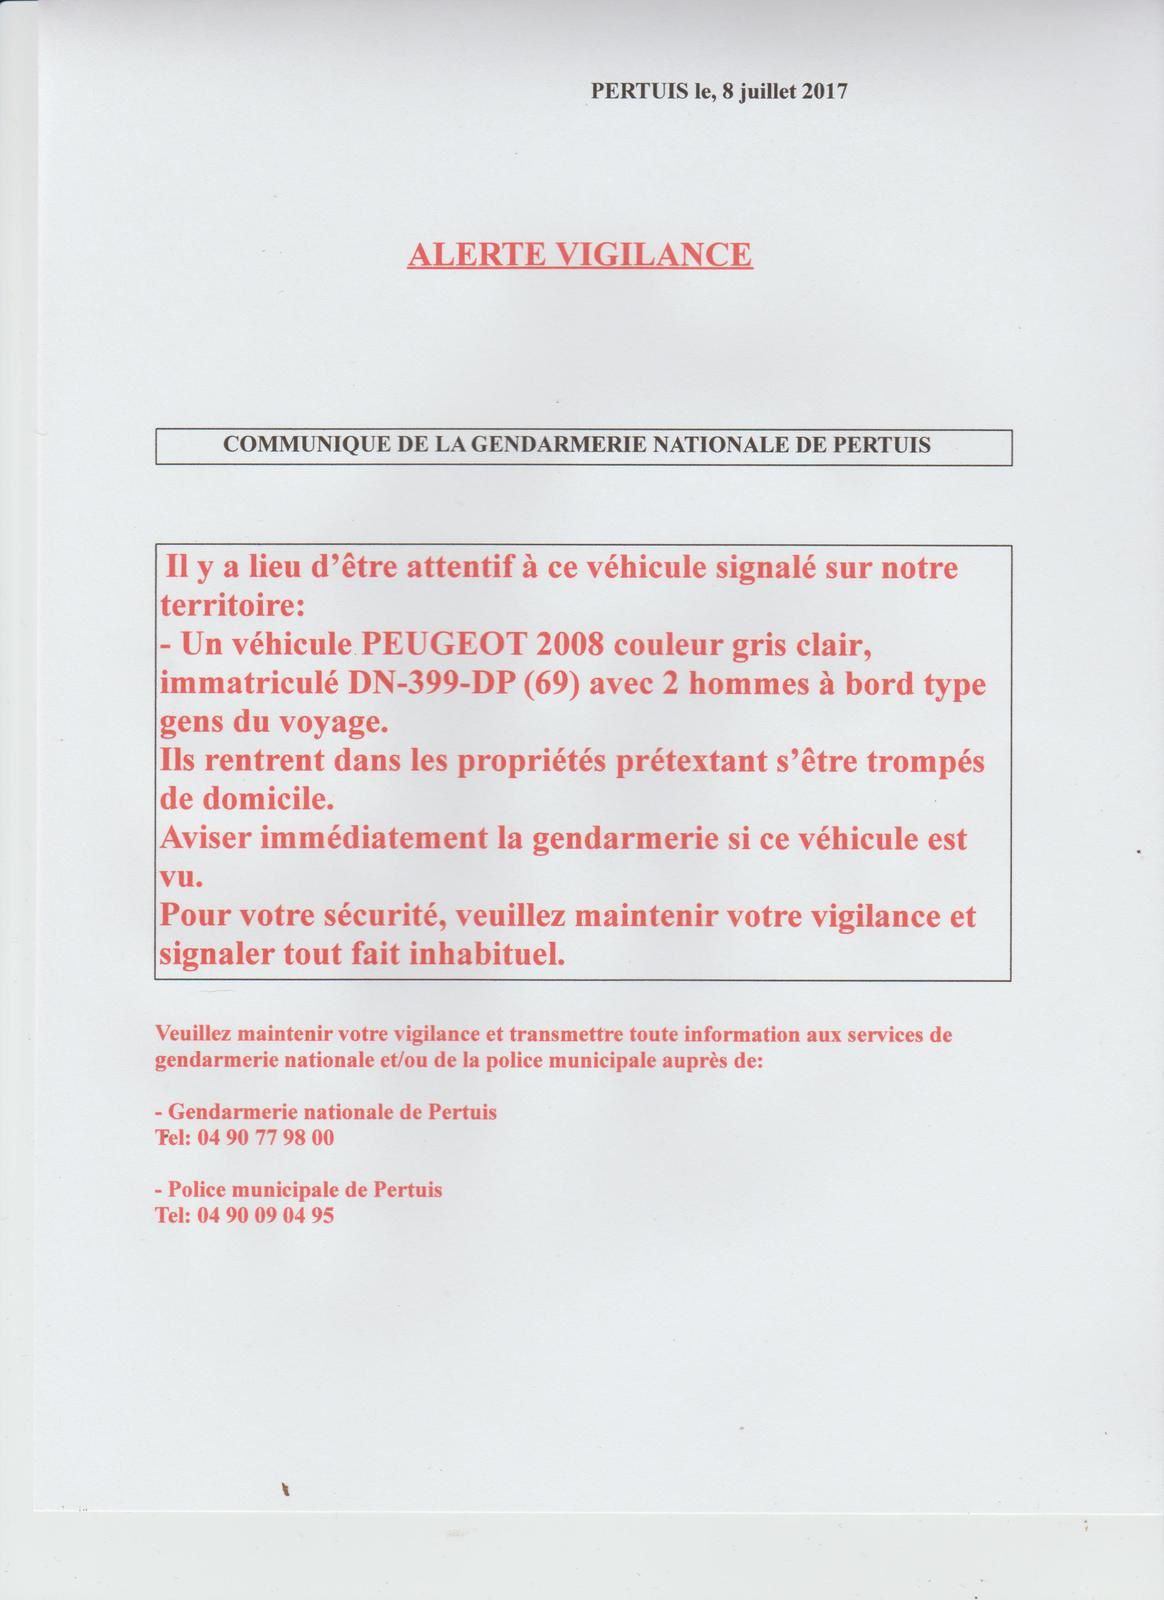 ATTENTION, VIGILANCE PARTICULIERE